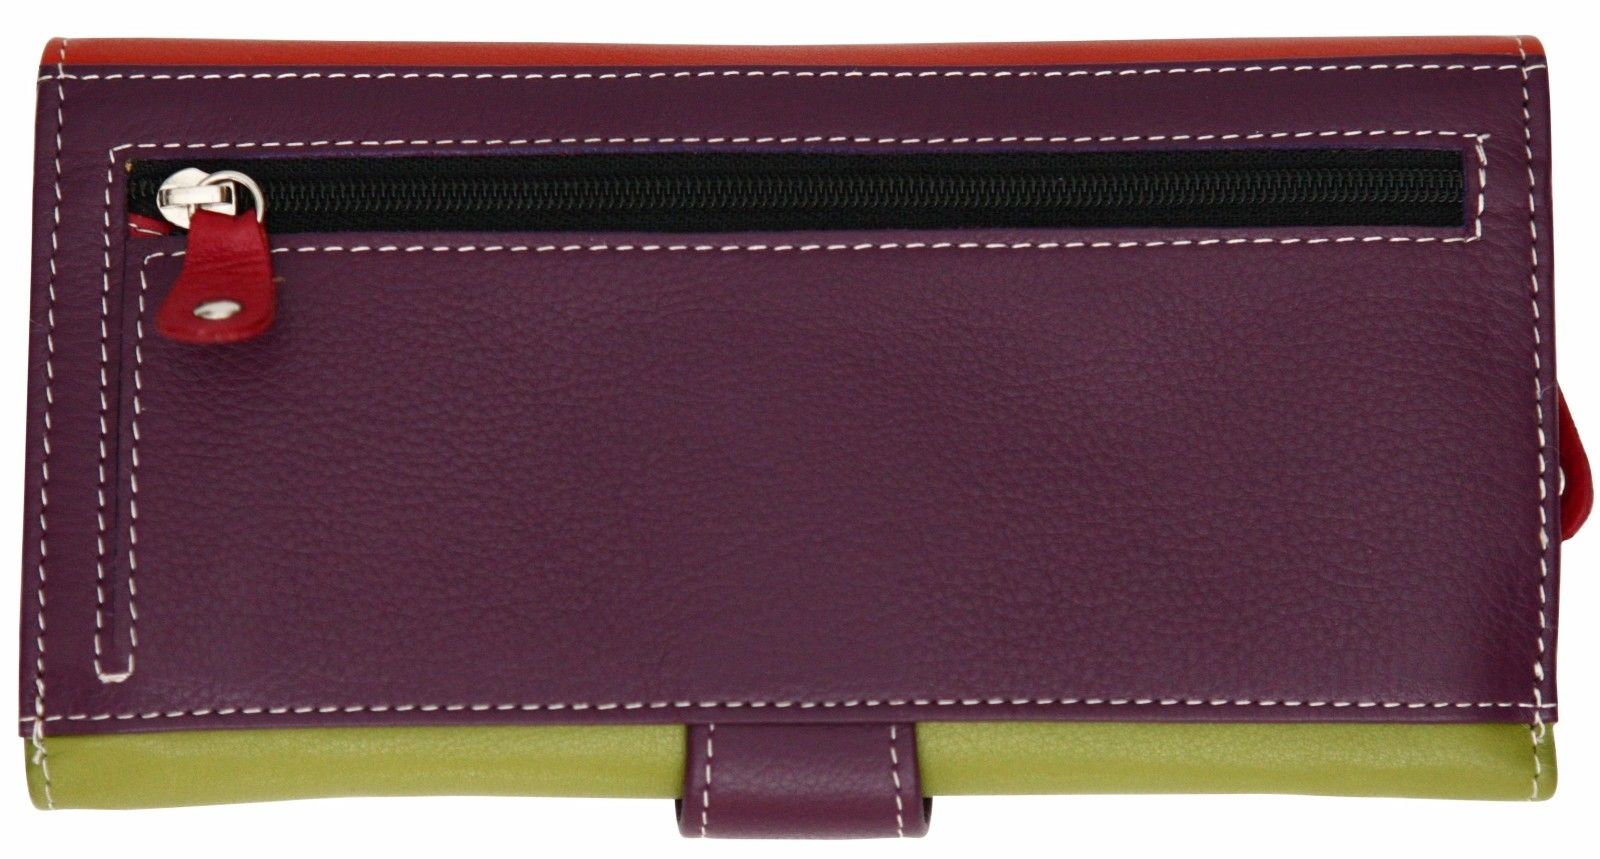 Felda-RFID-Ladies-Leather-Soft-Wallet-Large-Capacity-Purse-Womens-Multi-24-Card miniatuur 46